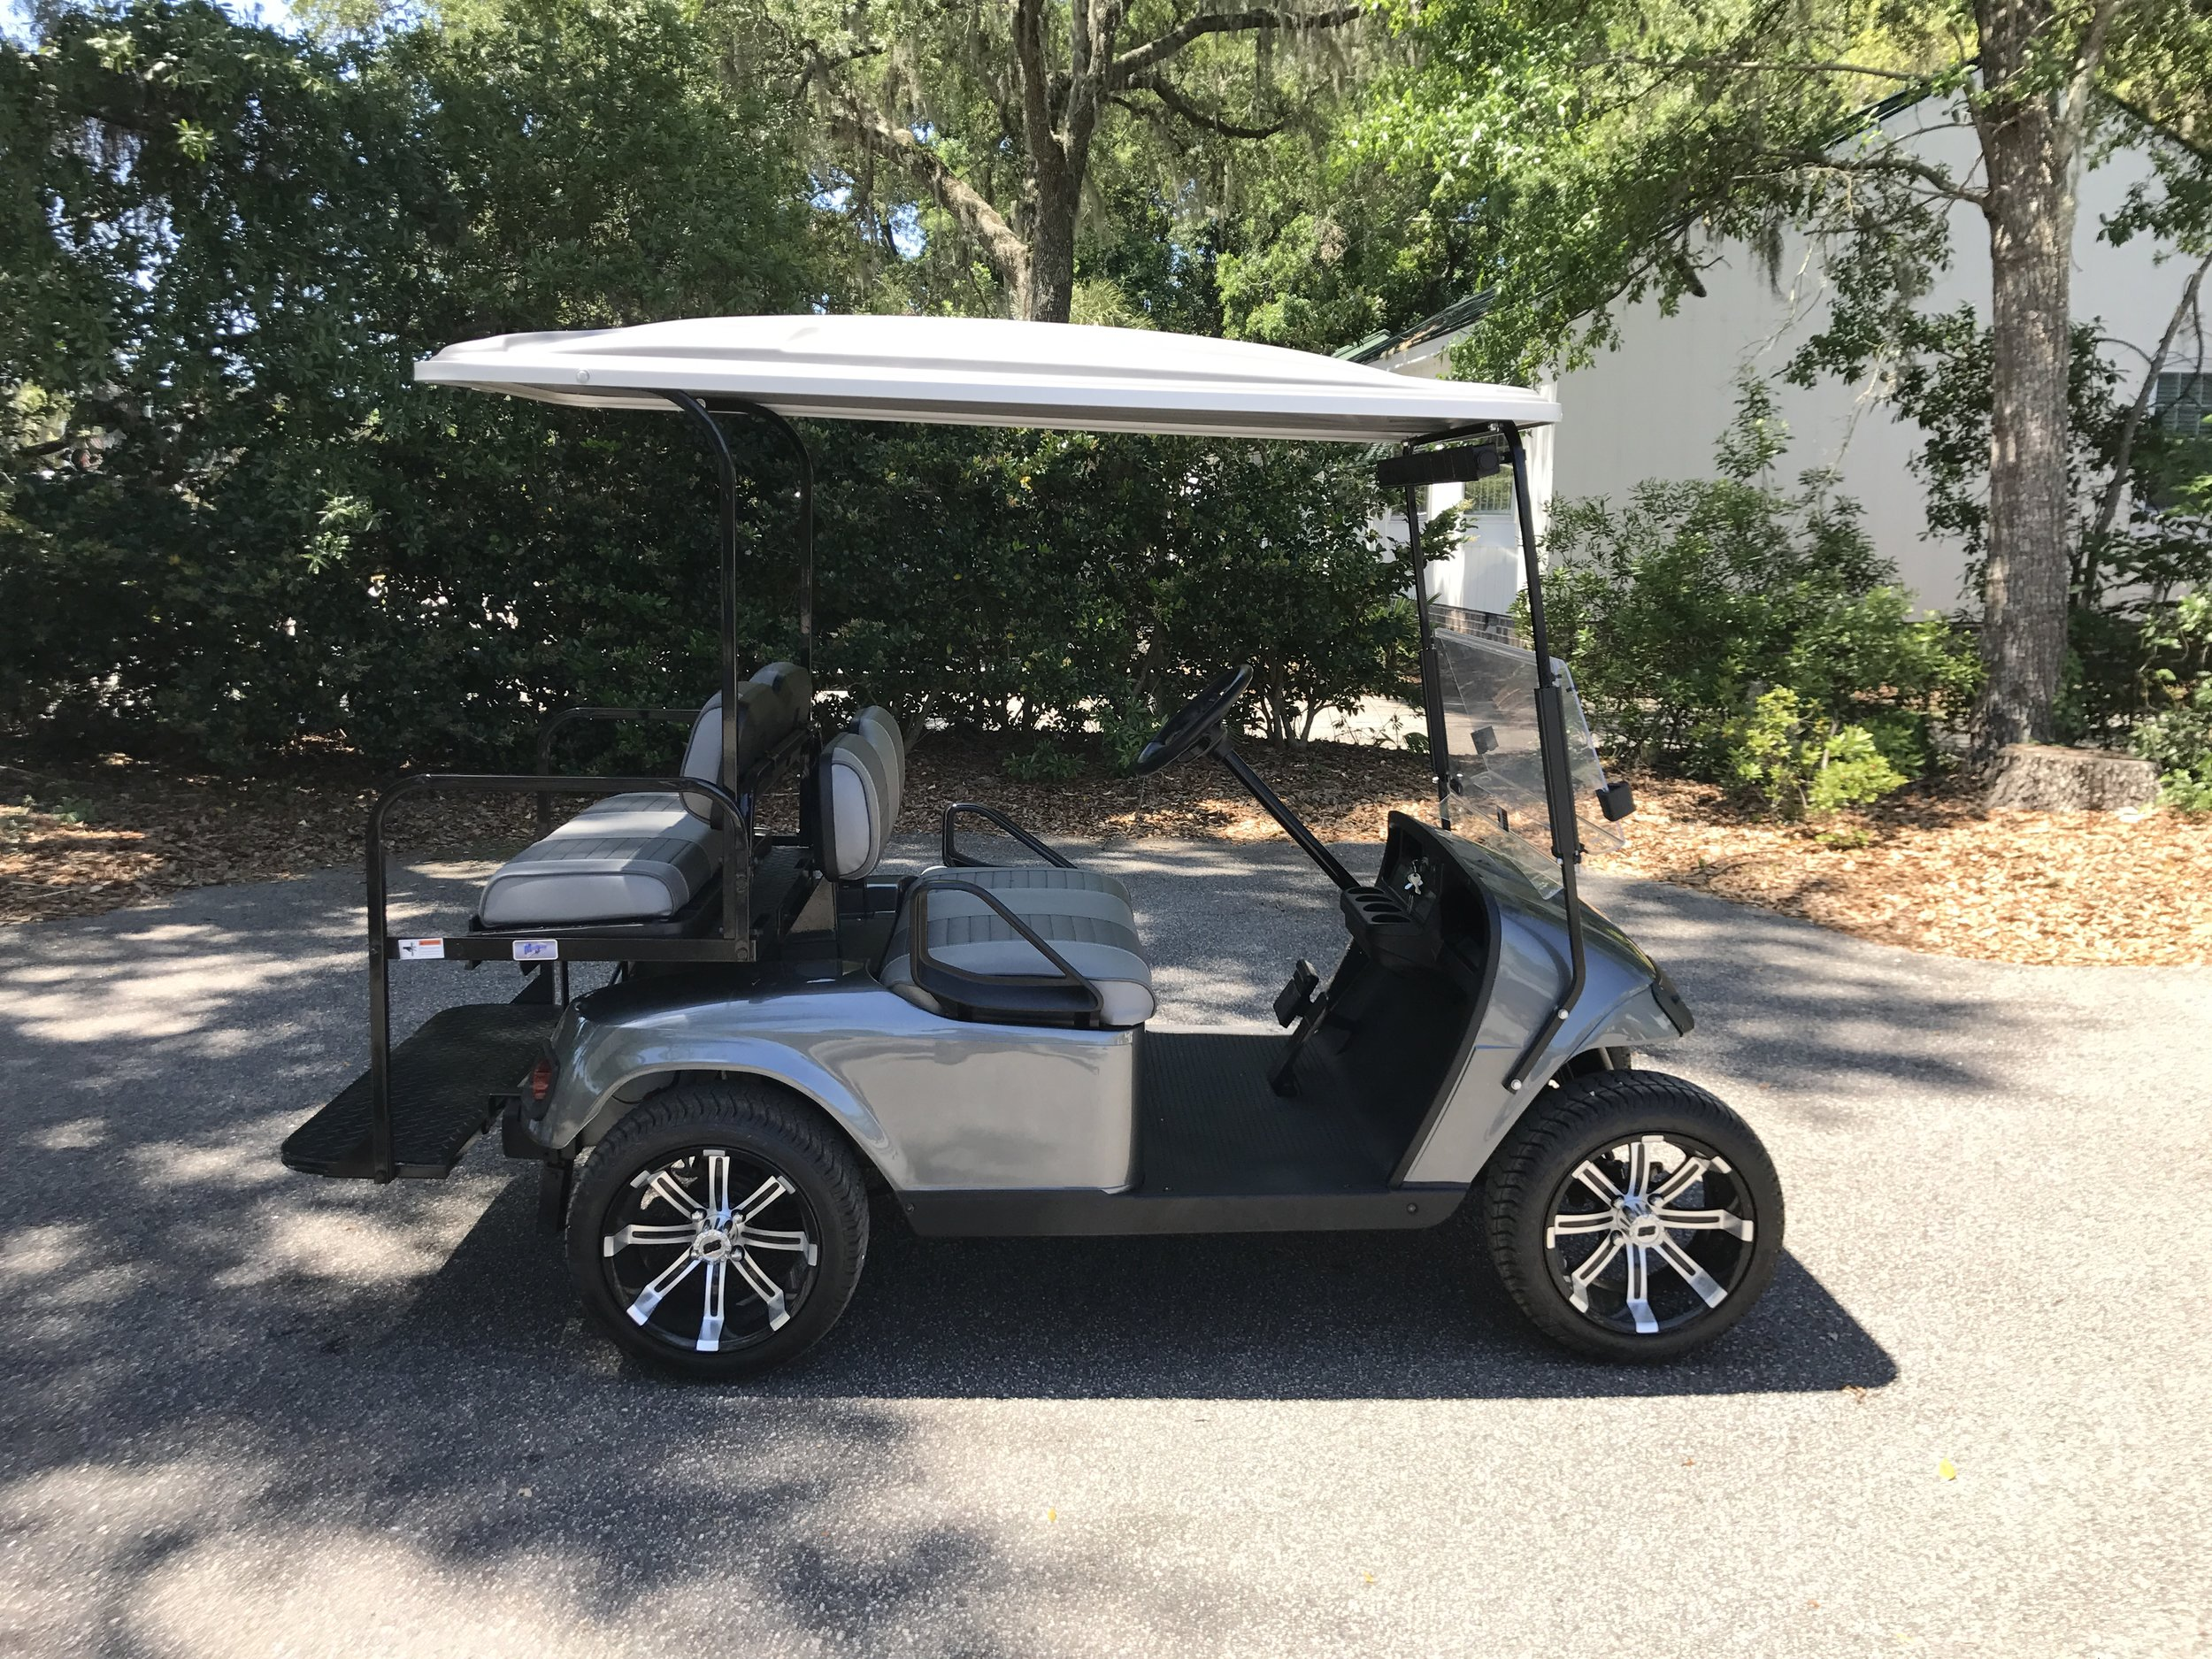 2015 Charcoal EZGO Cart —————  Charcoal/gray seats, gray extended top, new 2019 batteries (6-8vt), high speed code, LED lights, Lo Pro tires, mirror & flip windshield